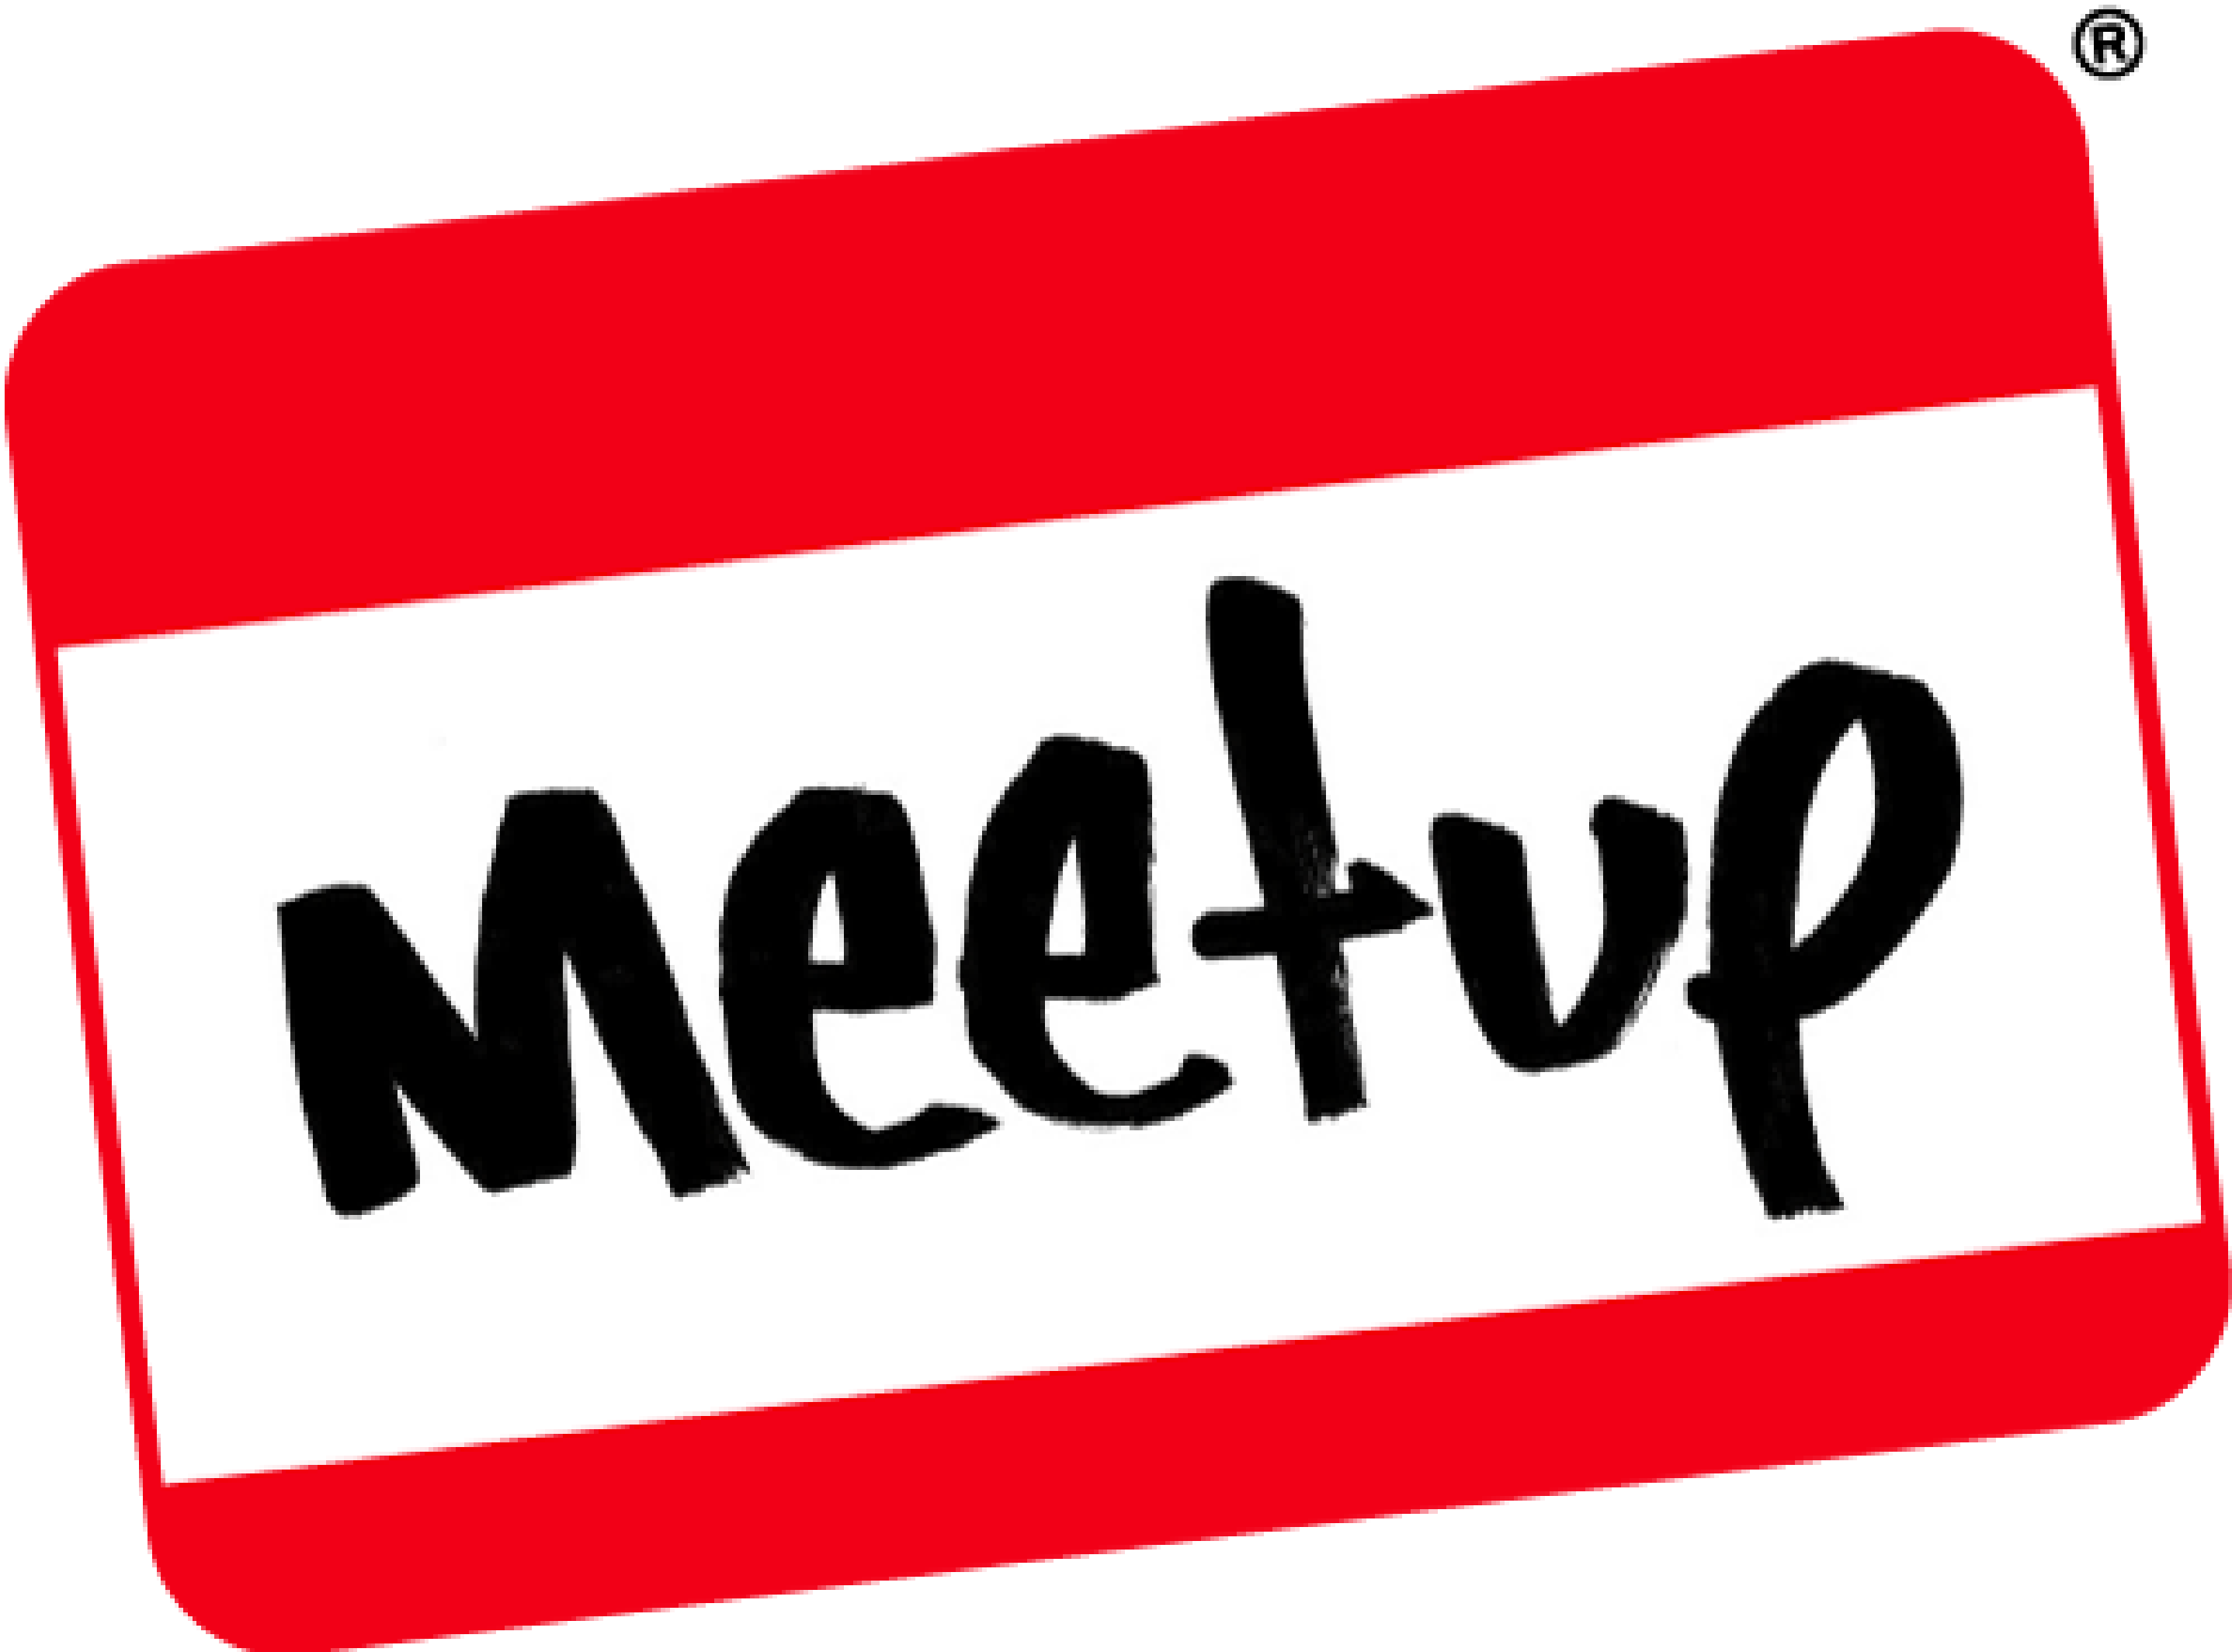 Meetup pricing